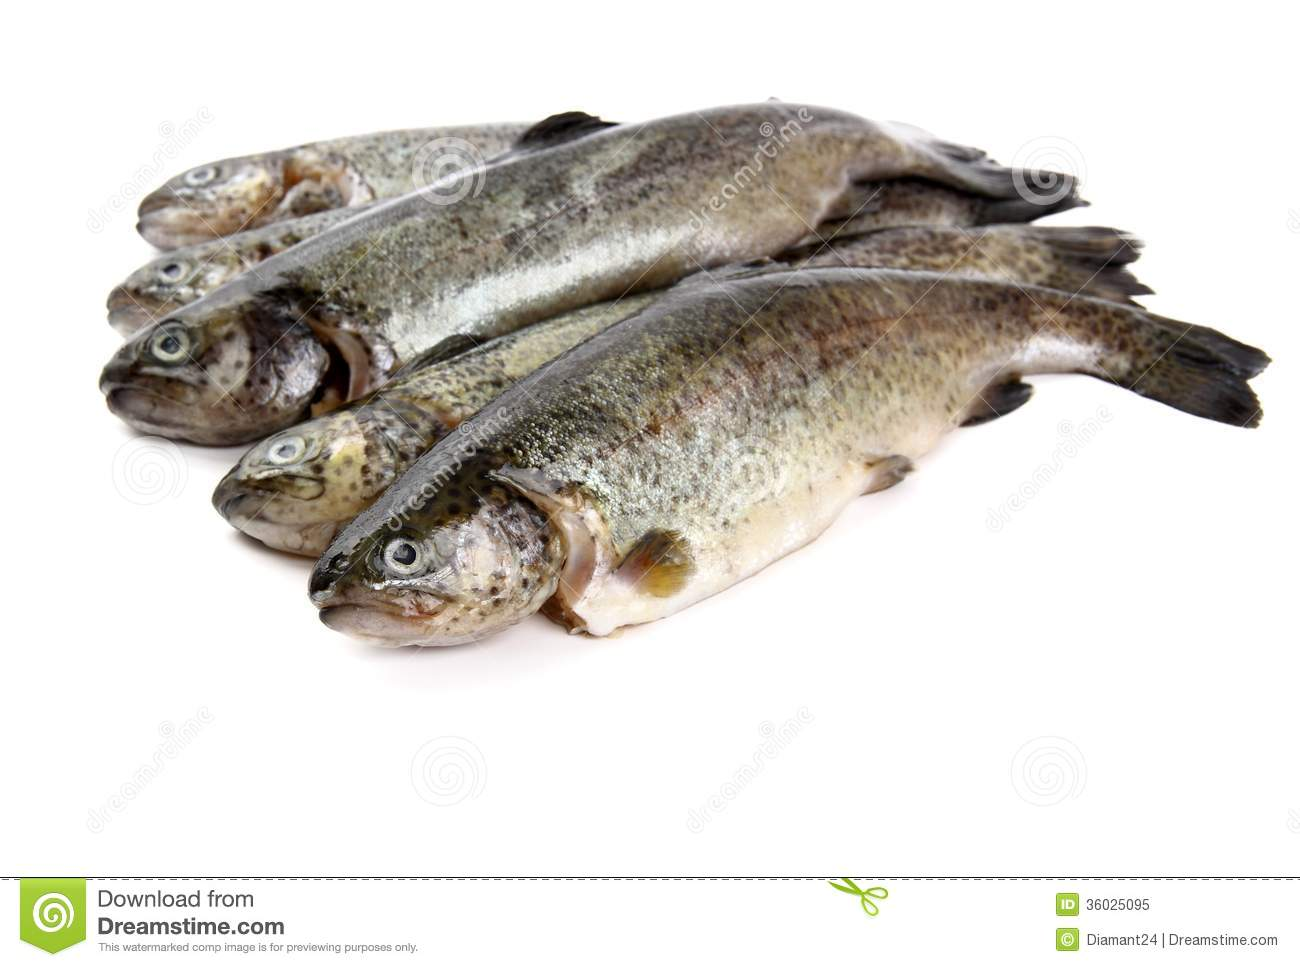 how to cook rainbow trout from frozen